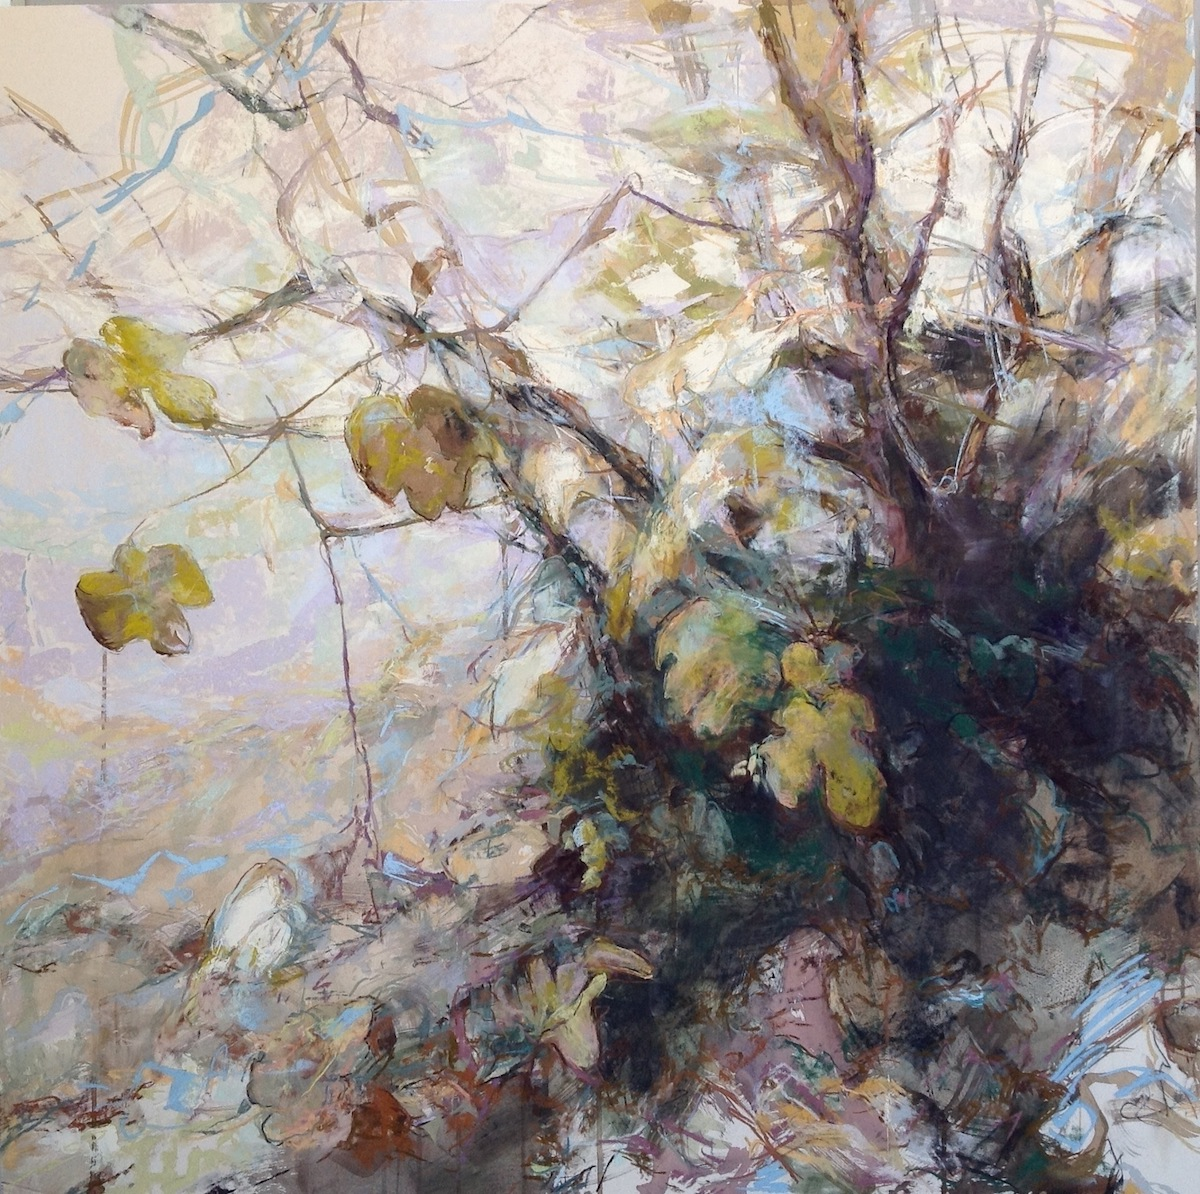 """Marcia Holmes, """"Fig Leaves Fall in Tuscany,"""" 2017, pastel, 40 x 40 in. Sold. This painting won 2nd place in a UART Web Exhibition and was a 2018 finalist in The Artist's Magazine annual competition."""